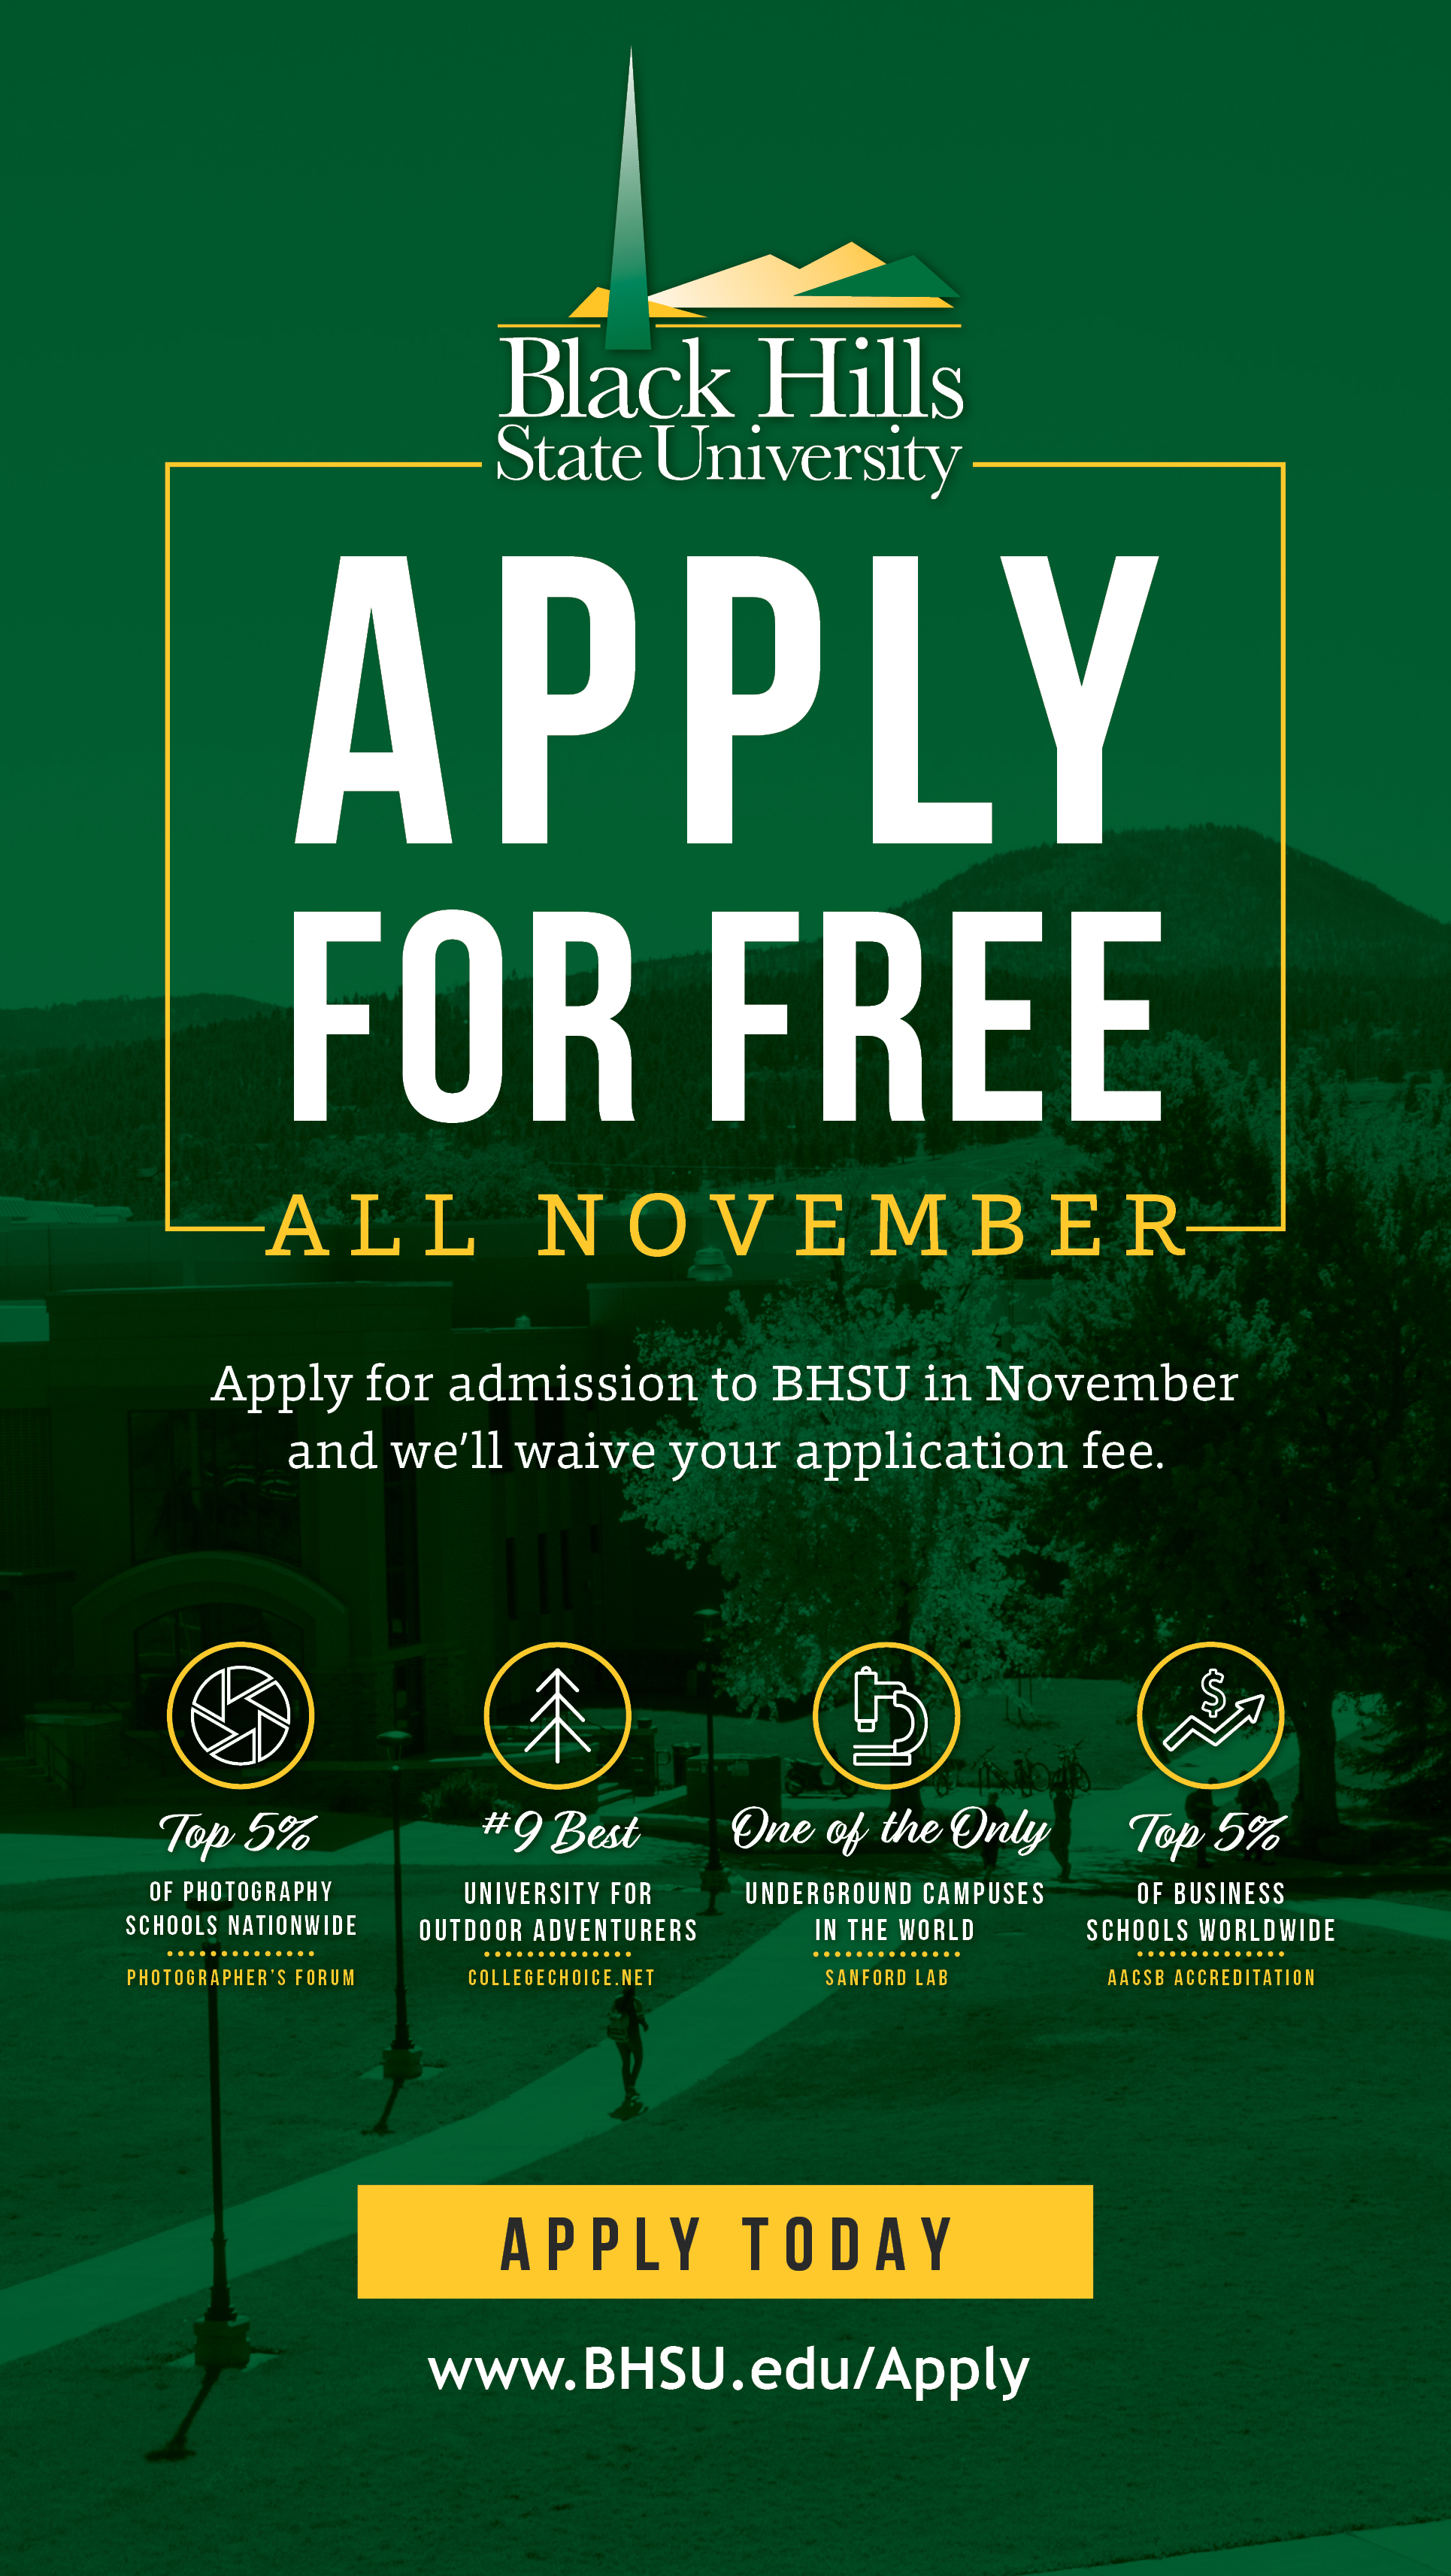 ApplyForFree_November2020_NextGrad